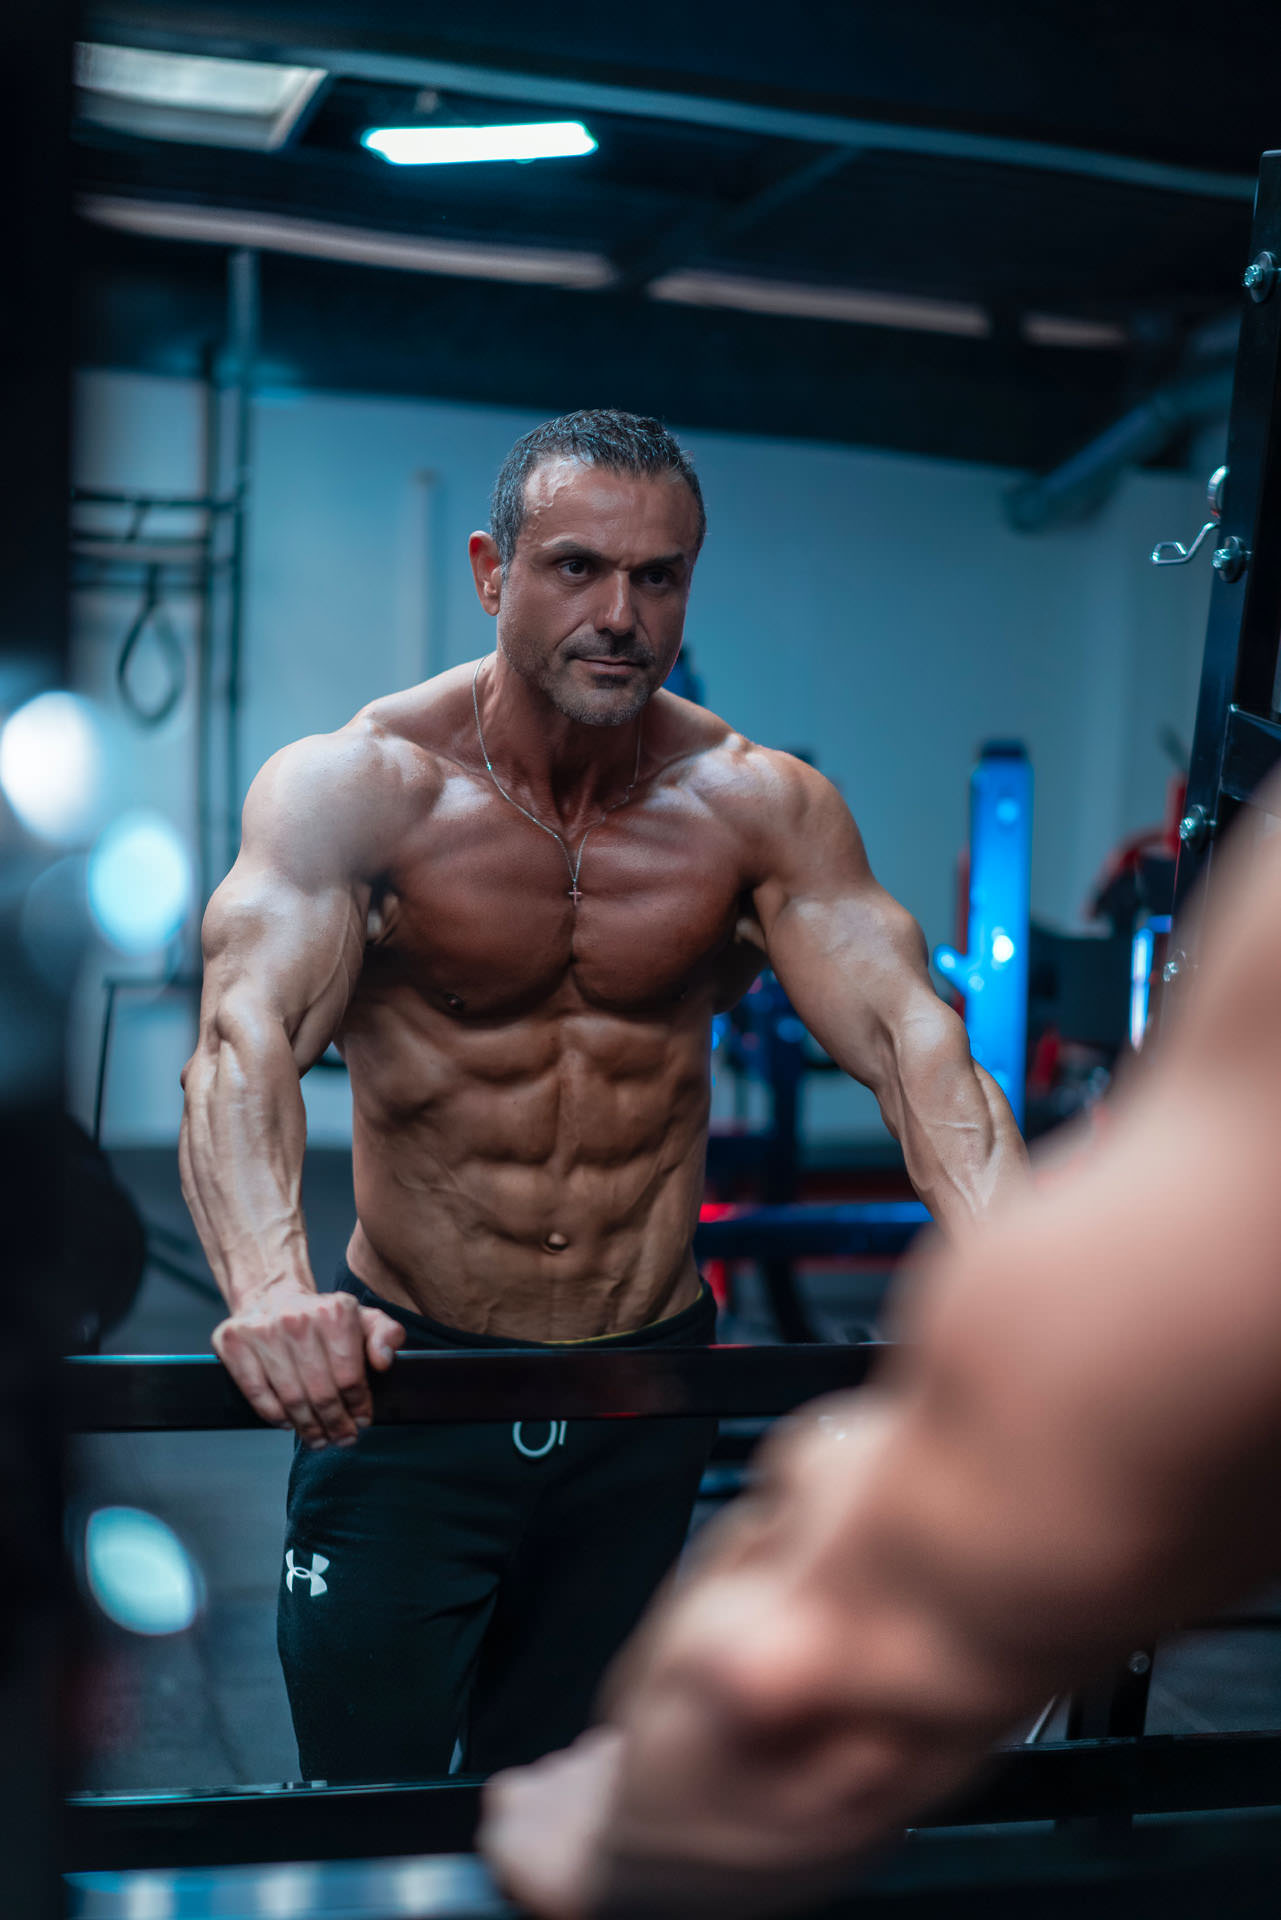 2020-03-15 - Enzo - Muscle Factory - 01729 - 1920px